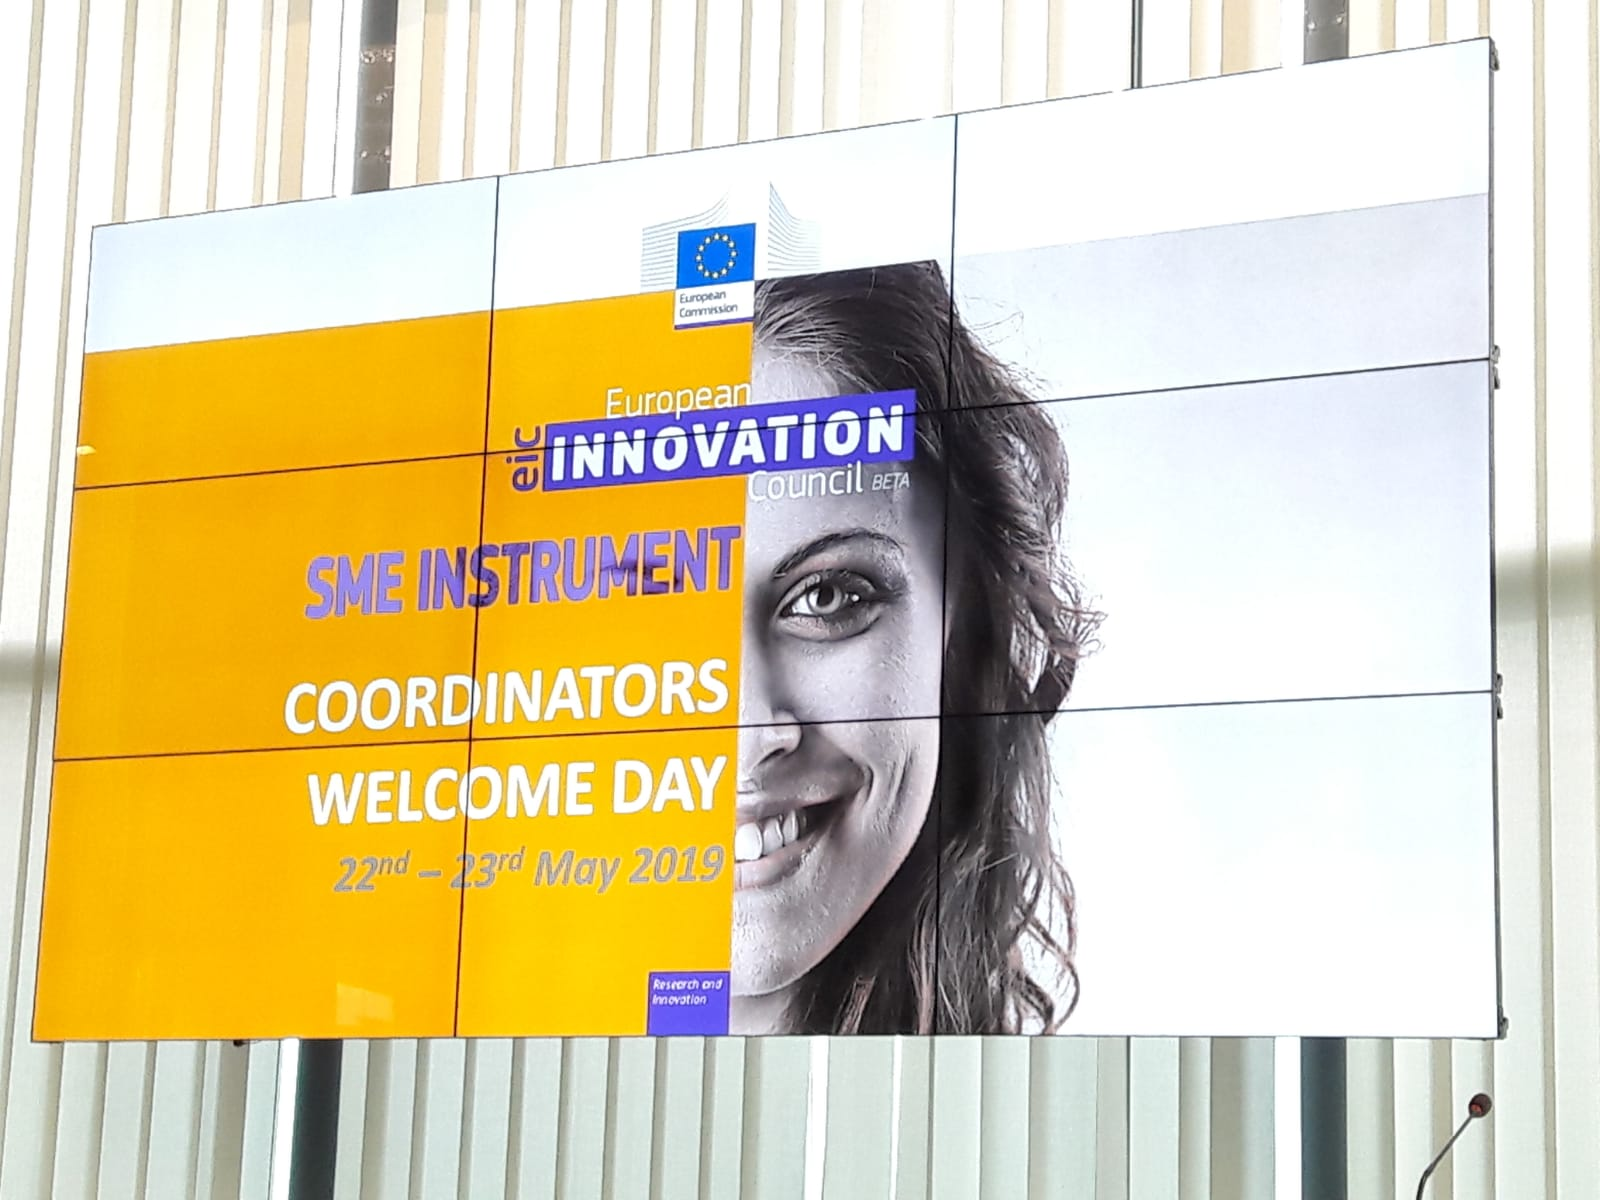 AROMICS' CEO will be present at the SME instrument Wellcome Day